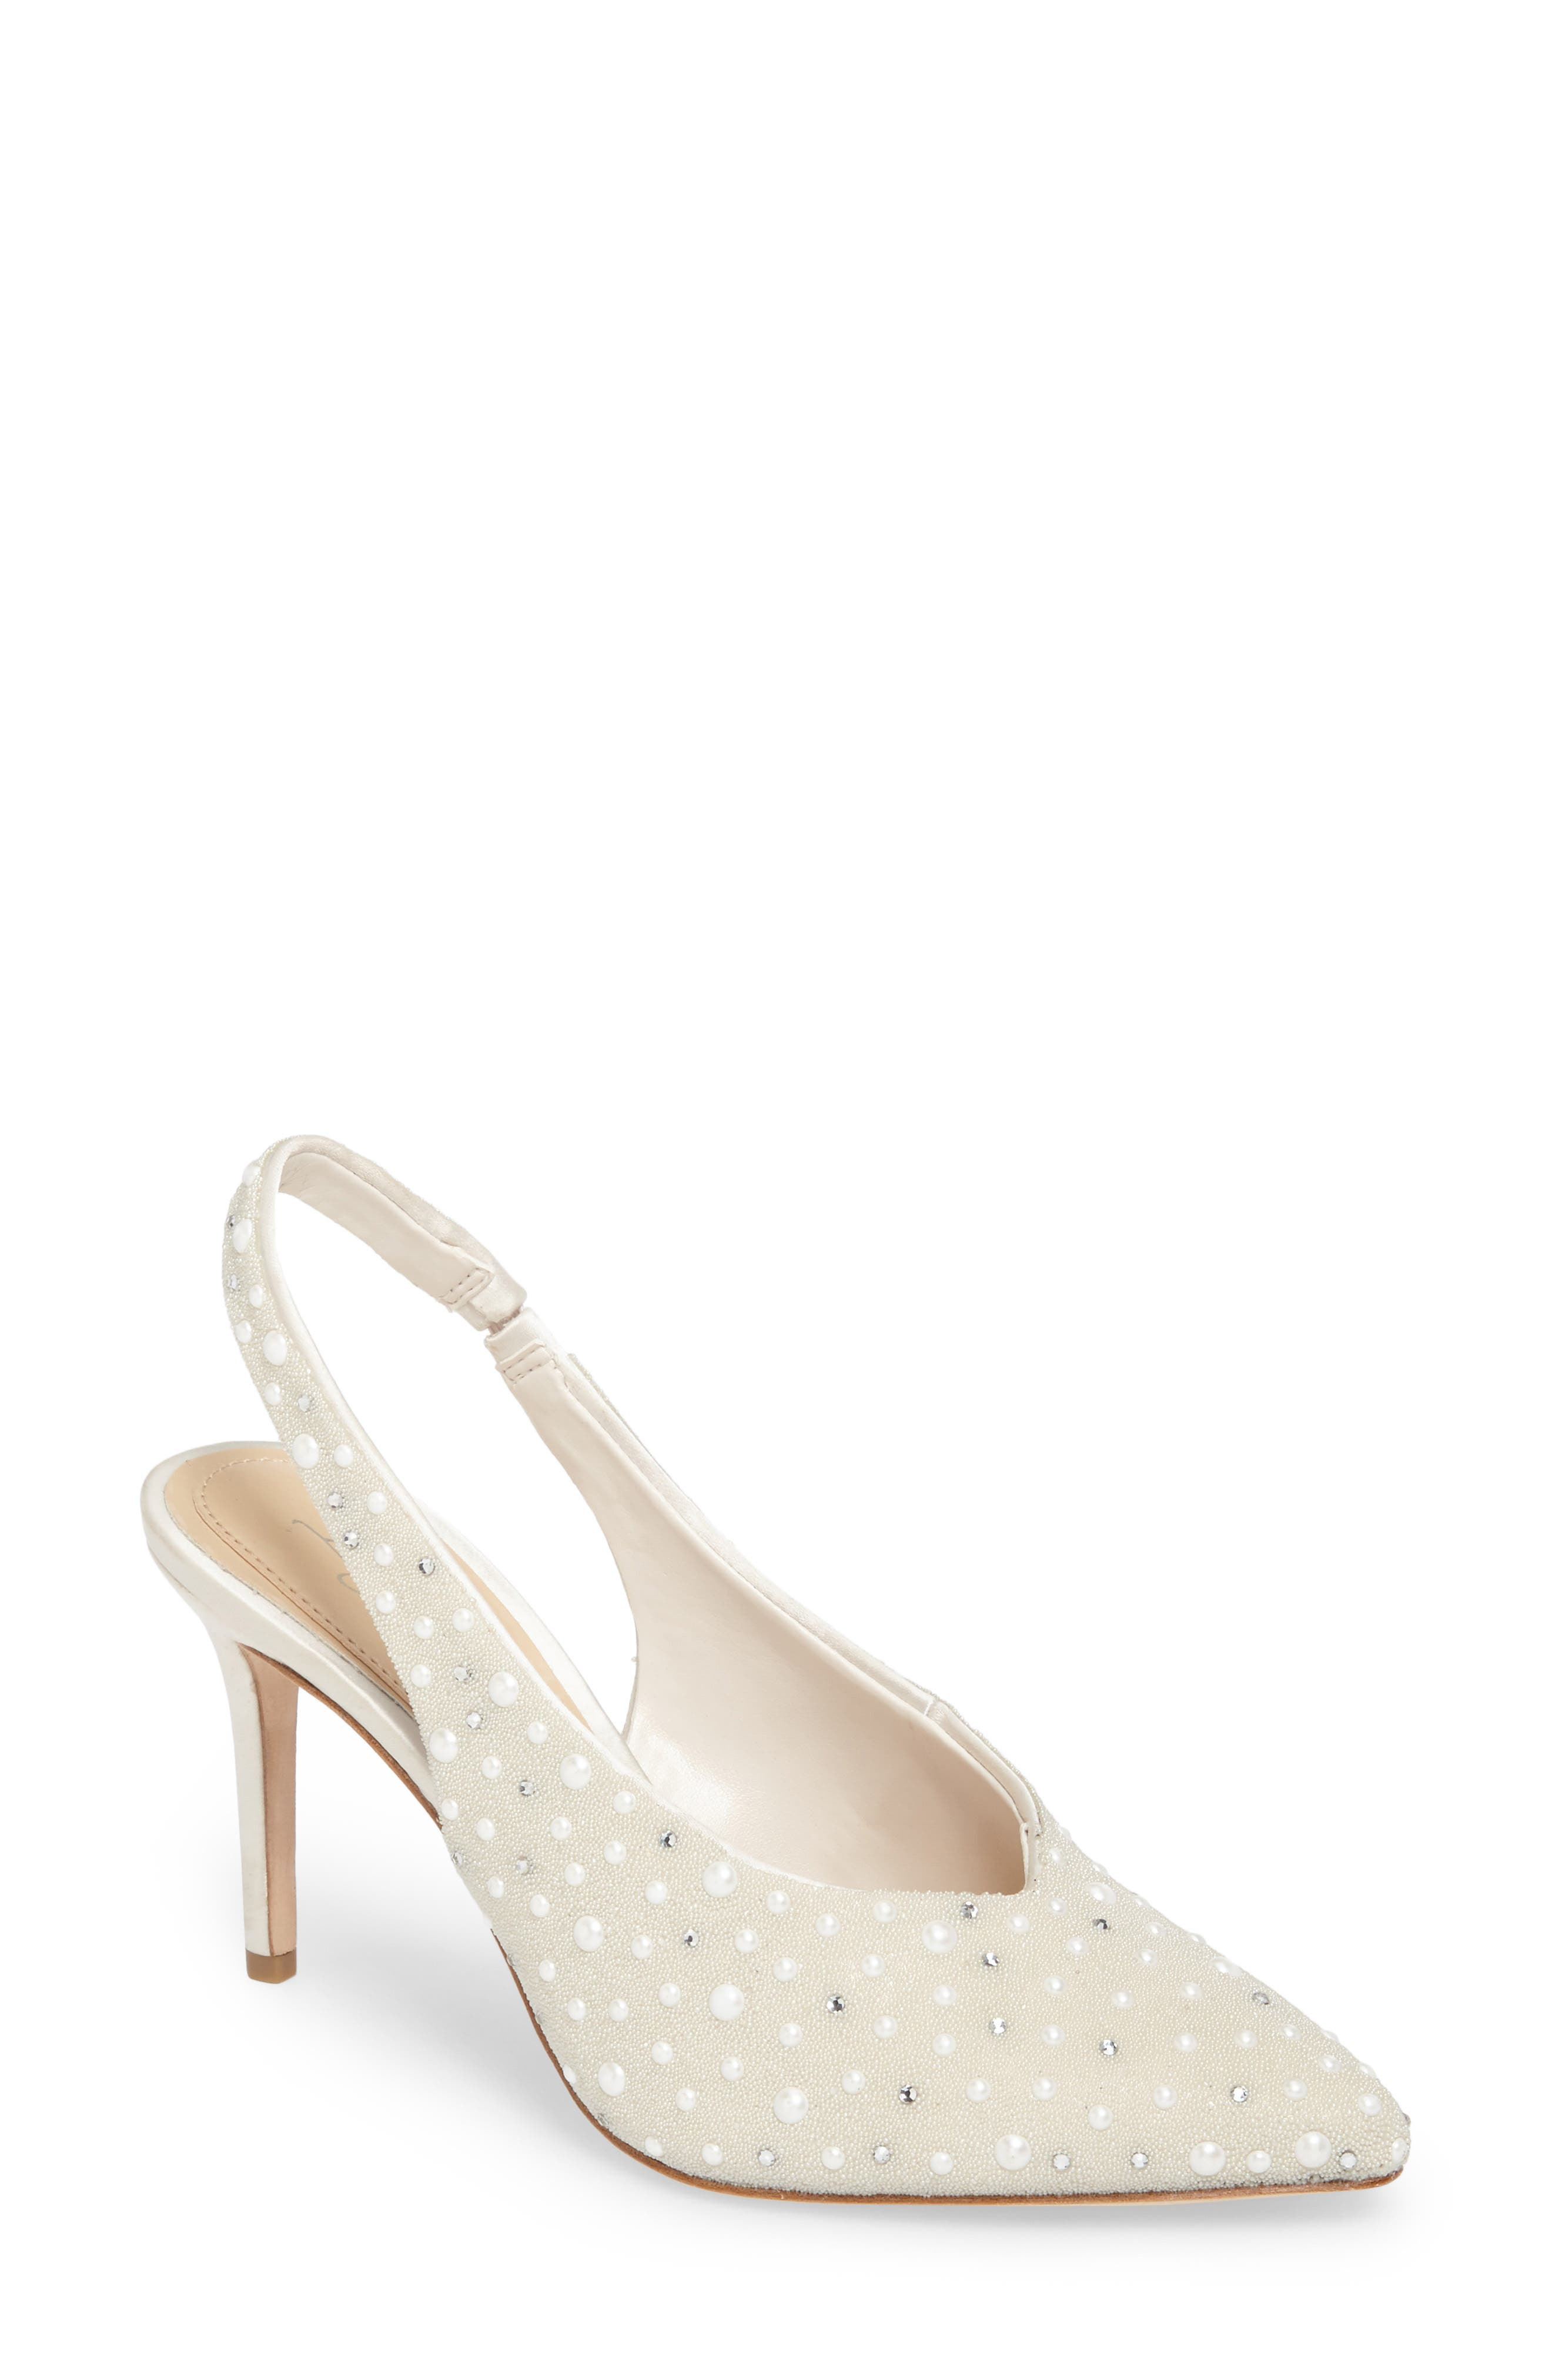 Imagine by Vince Camuto Mayran Slingback Pump (Women)